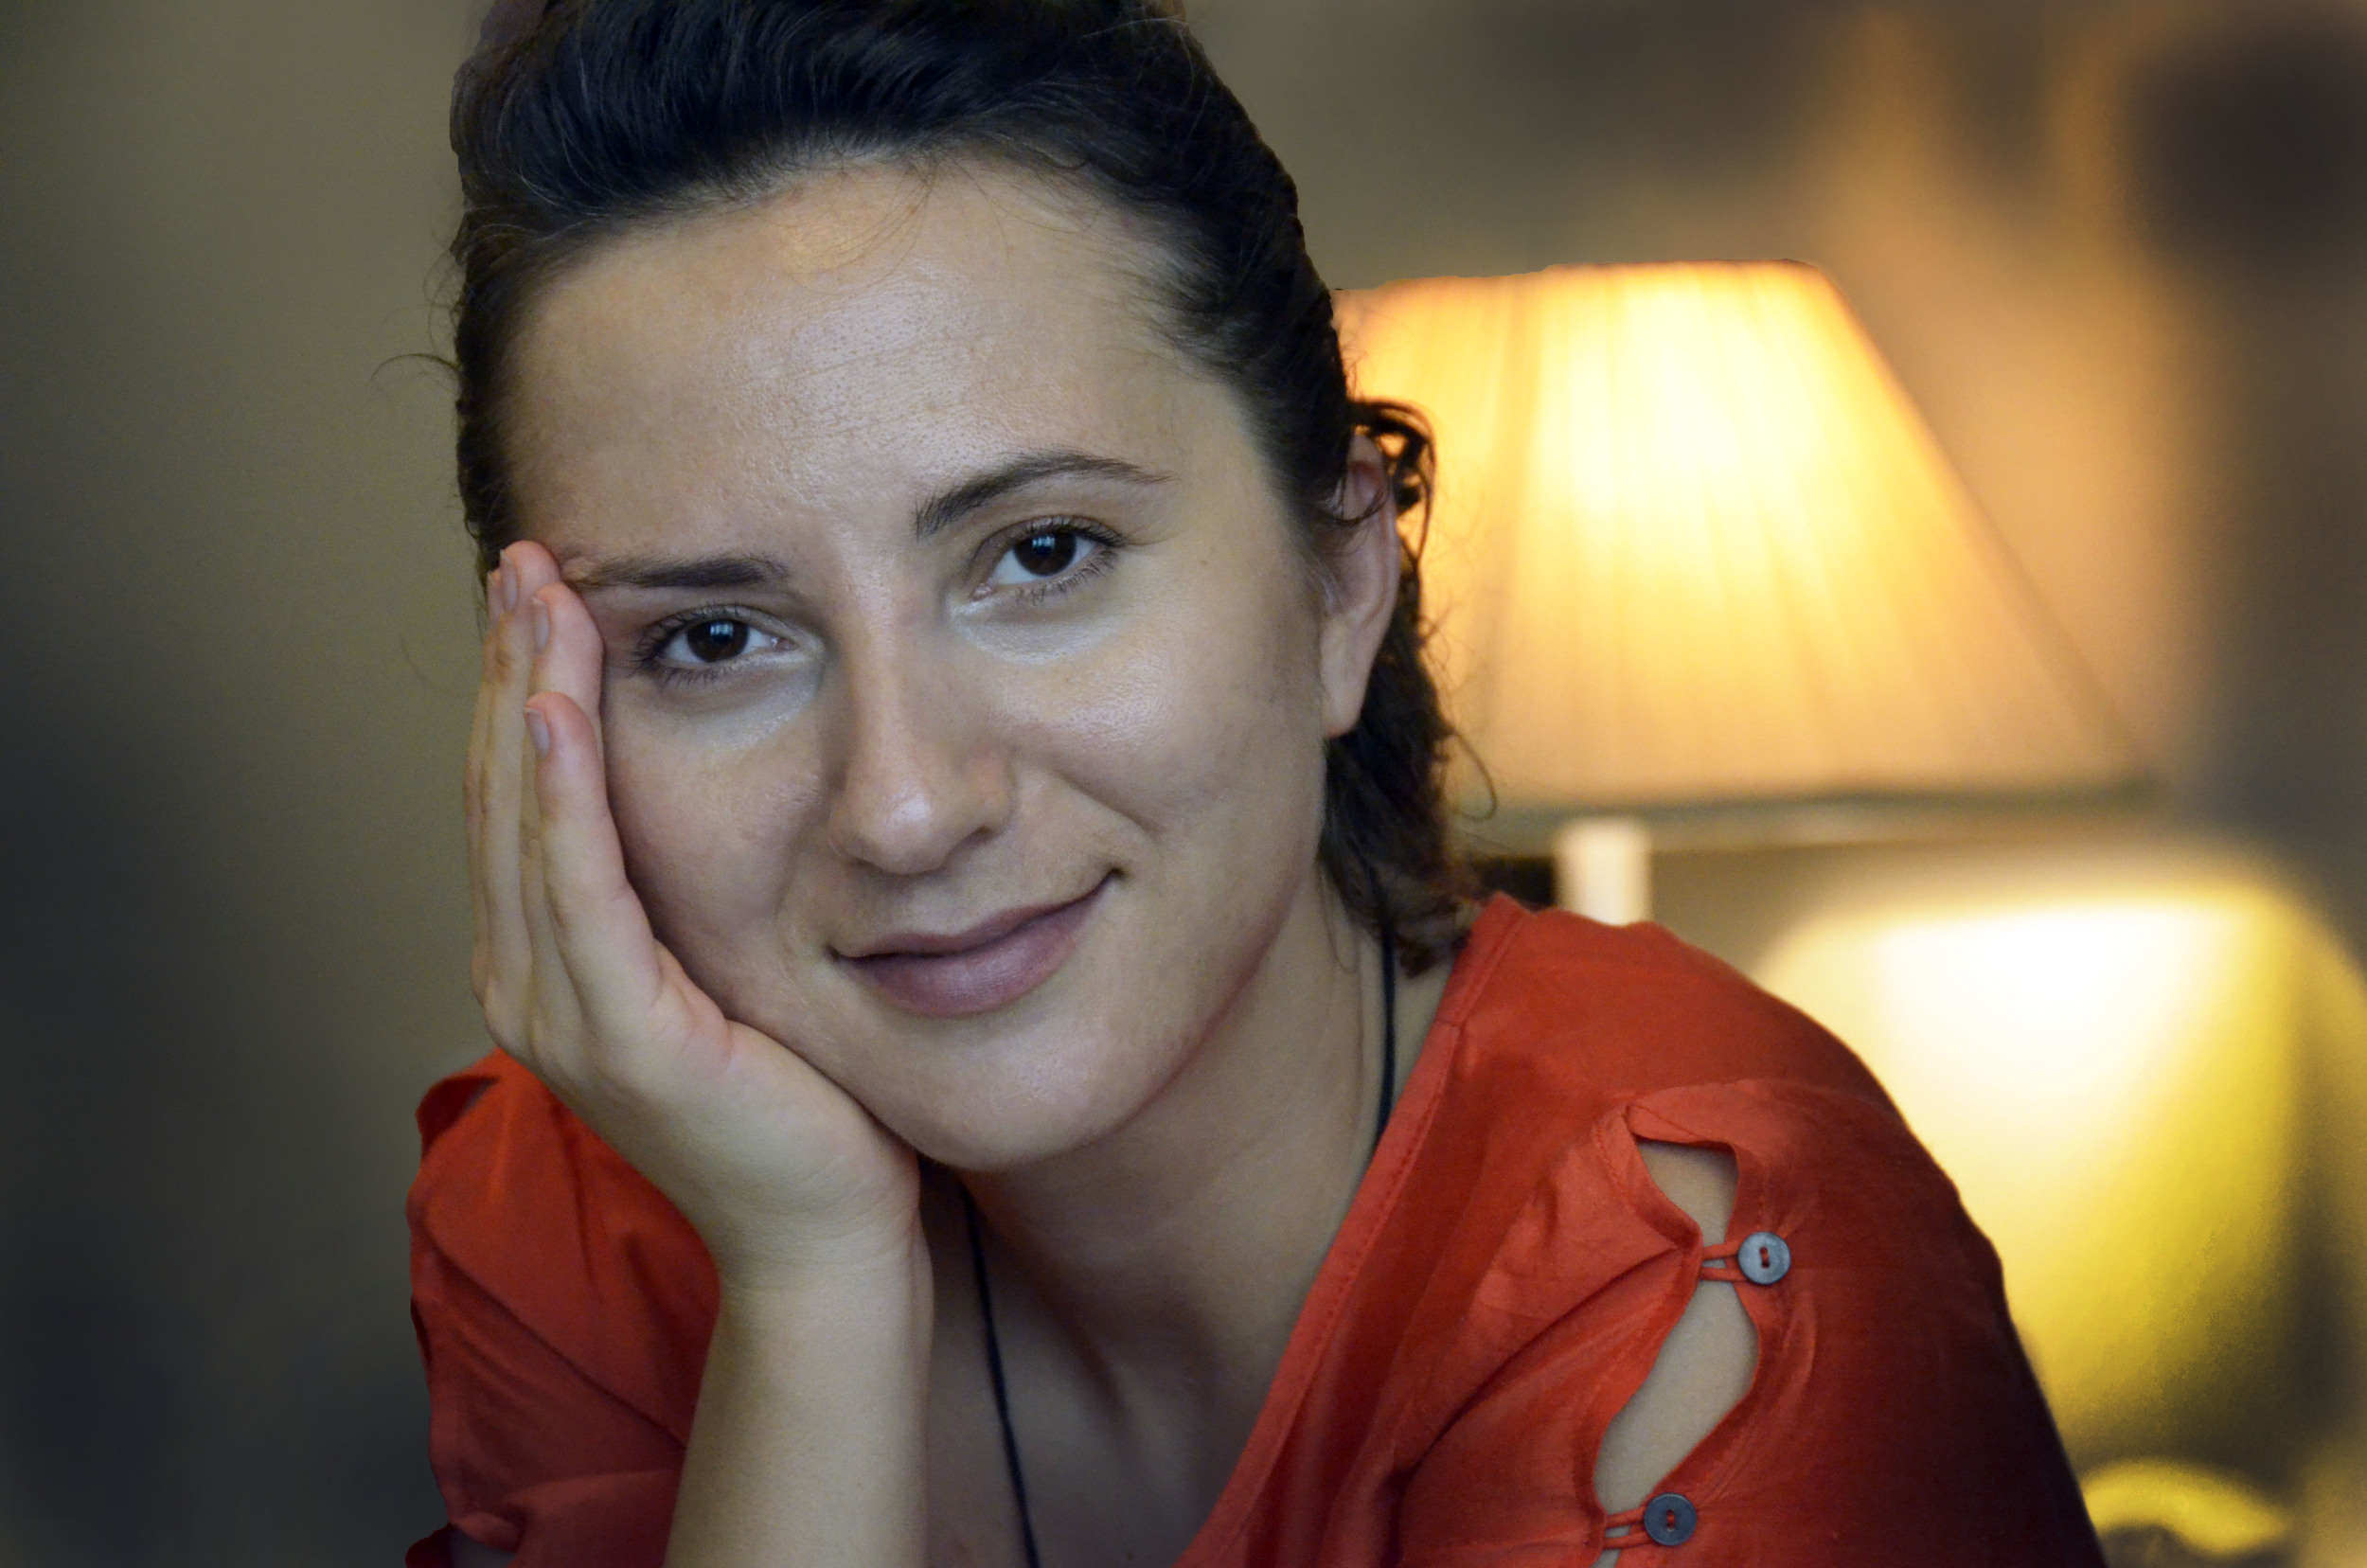 Mira Culic            Transformational Coach & Clinical Hypnotist with background in Physiotherapy